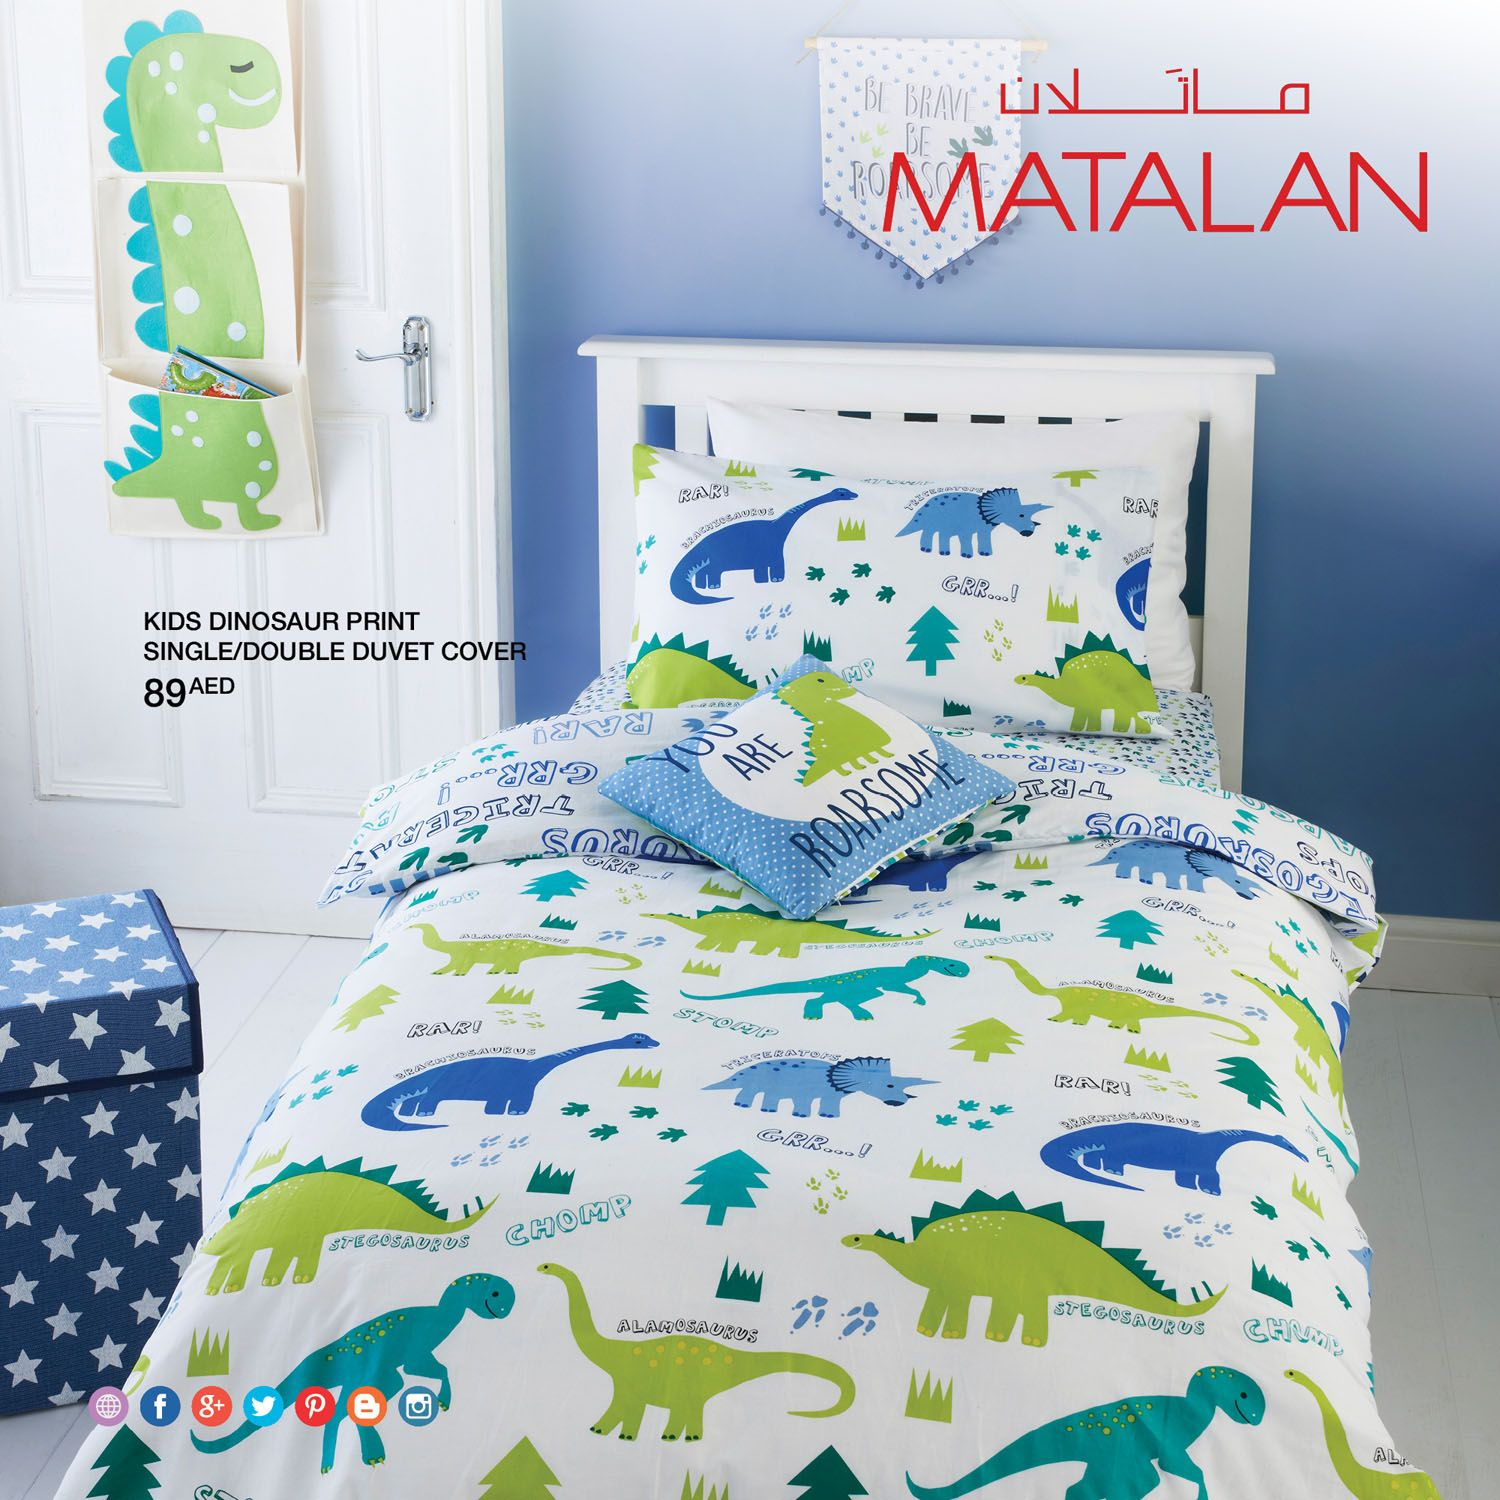 Add Some Colour And Fun To Your Little Ones Bedroom